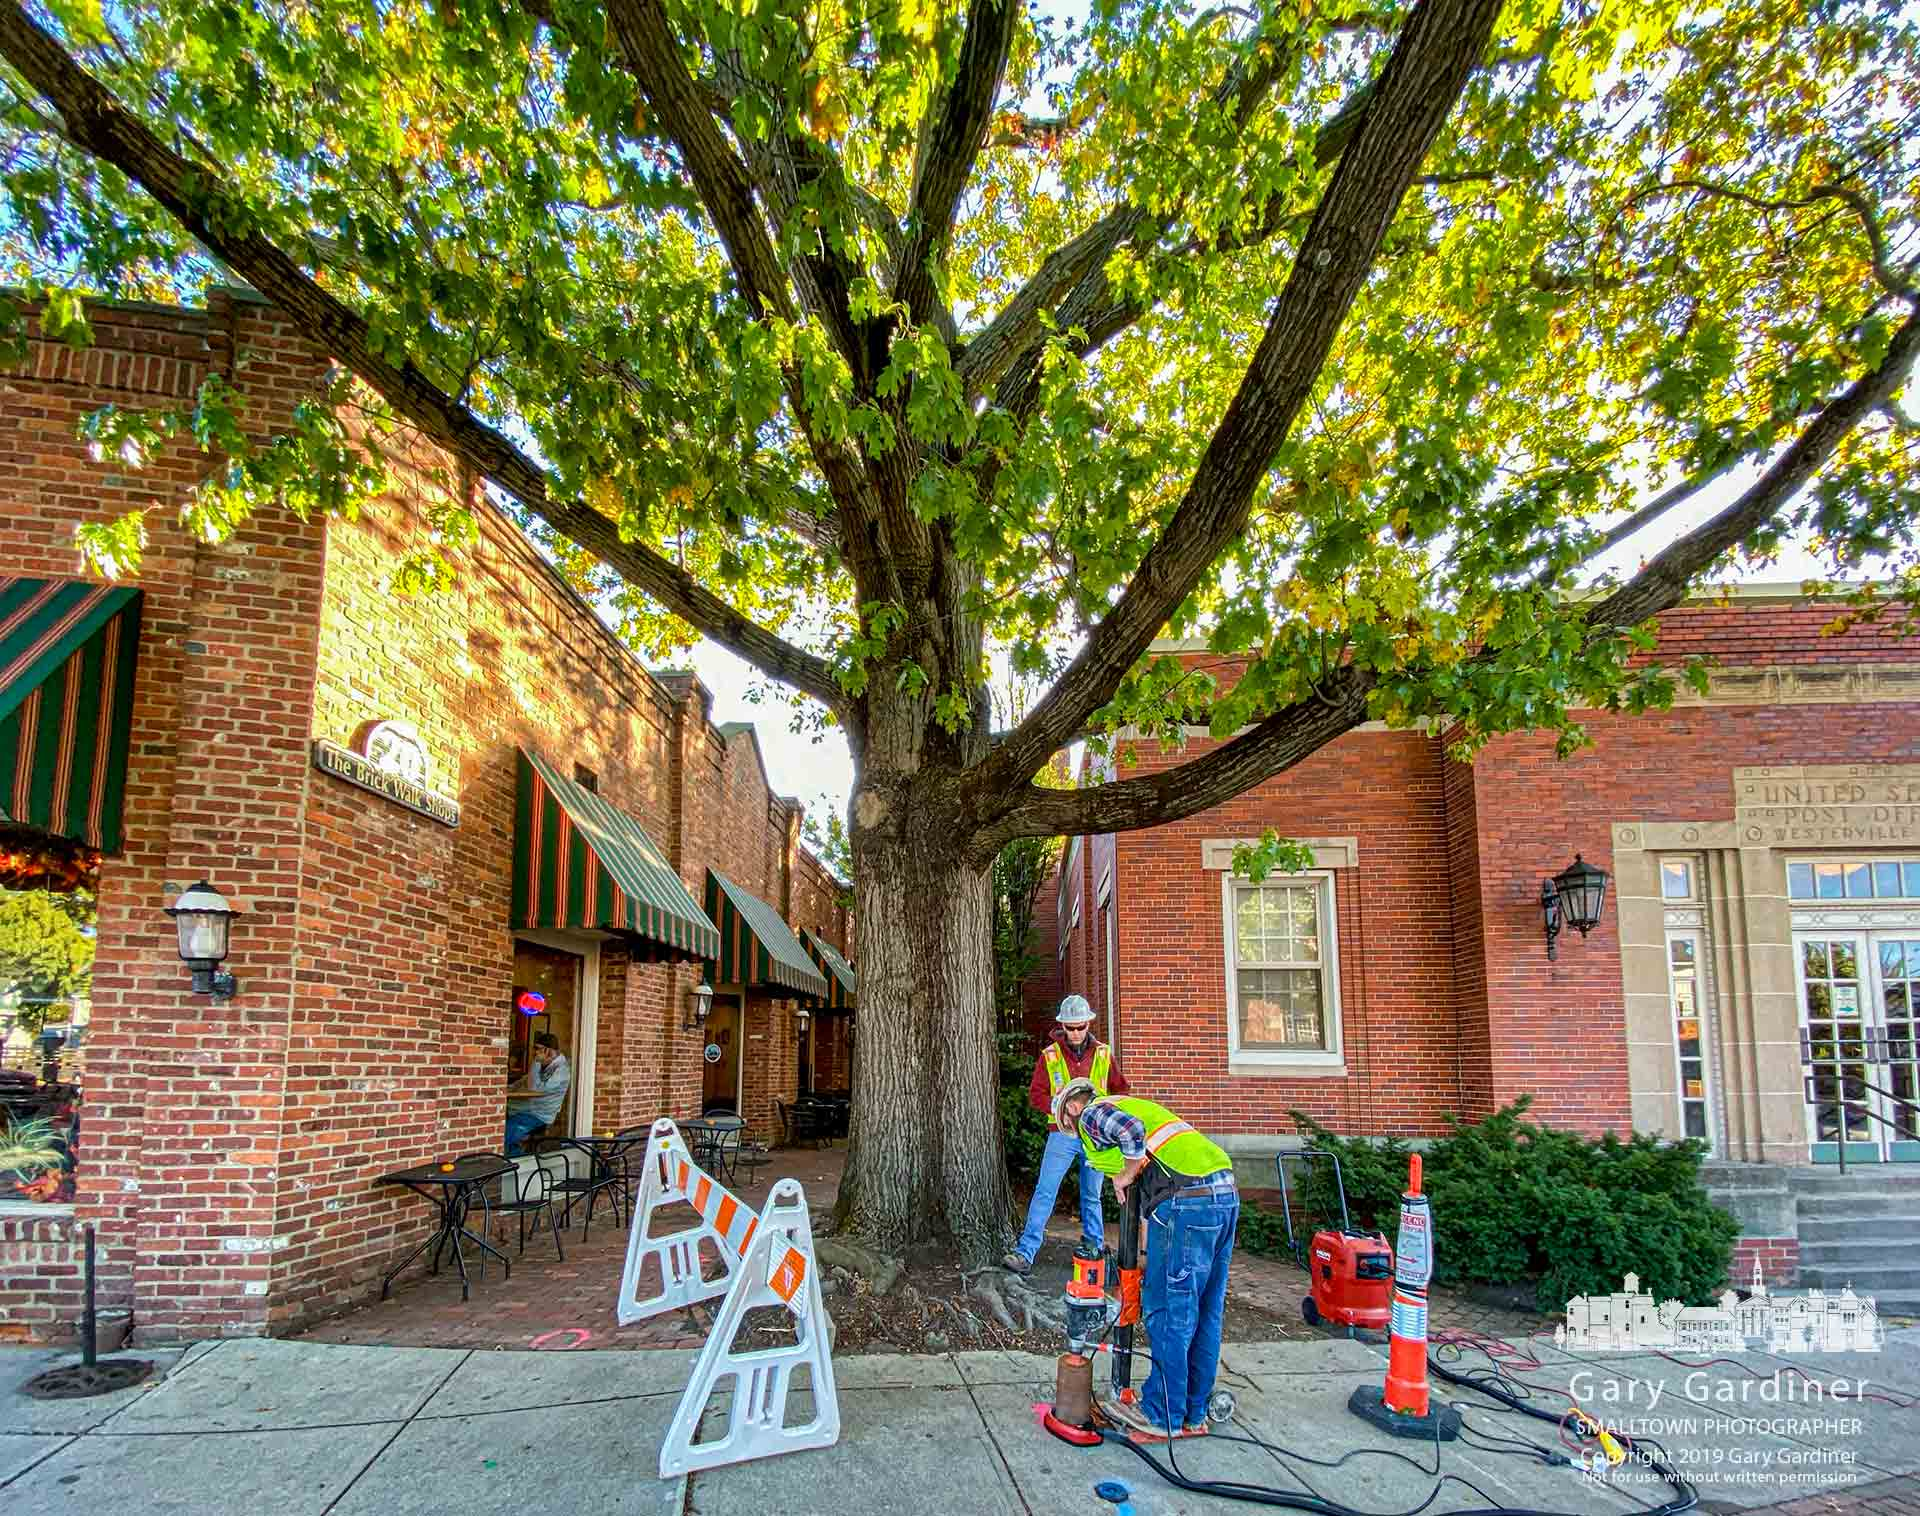 A crew cuts out rounds of sidewalk at the entrance to the brick walk at Java Central to check the location and density of the roots for the massive oak as the city prepares to build a platform around the tree and a bump-out for the sidewalk to protect the tree when the Uptown Westerville sidewalk and road project continues next spring. My Final Photo for Oct. 17, 2019.